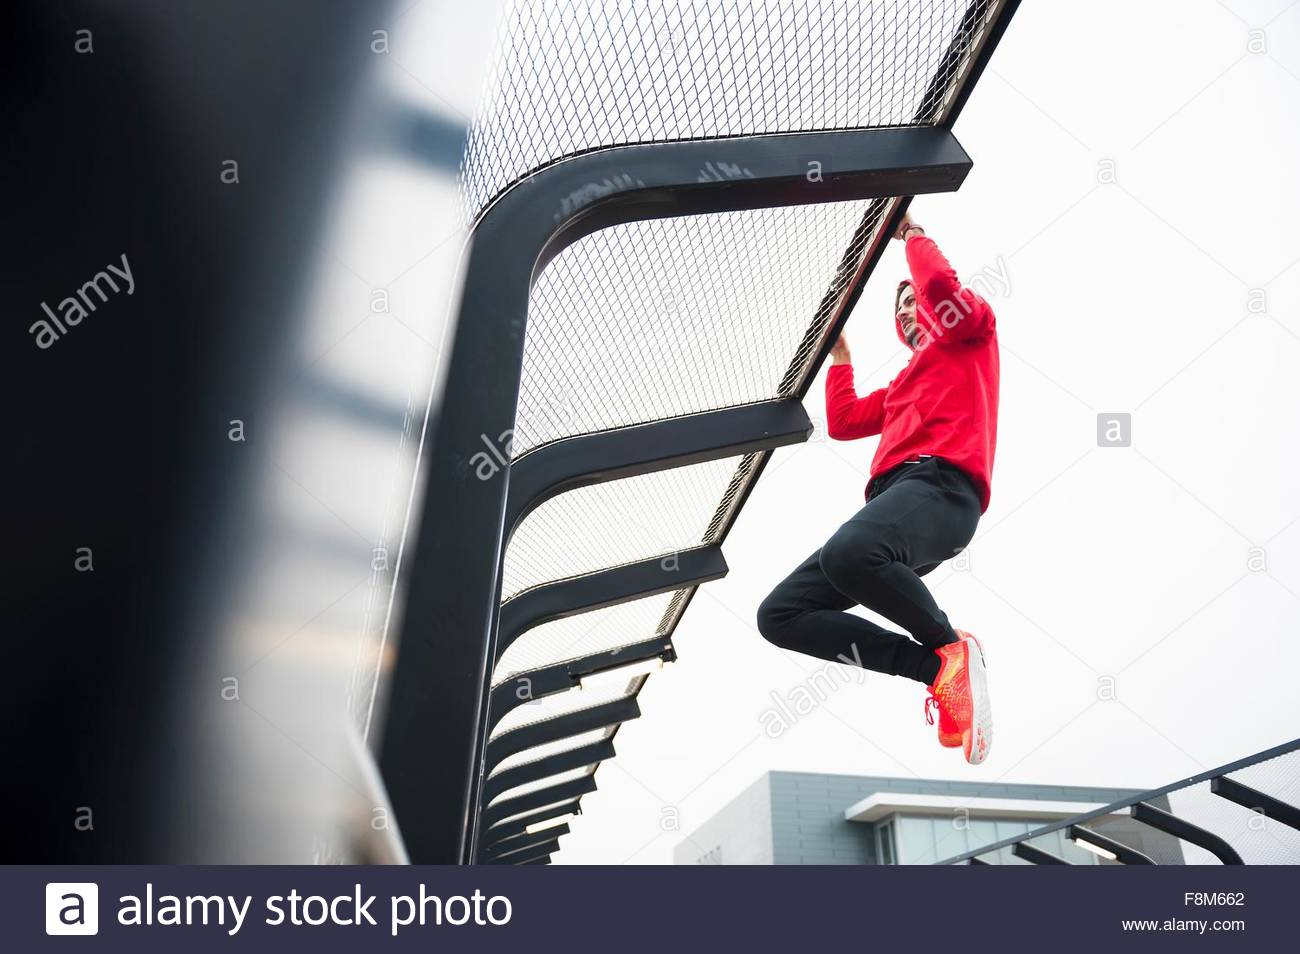 Low angle view of young man doing pull up training on city footbridge - Stock Image